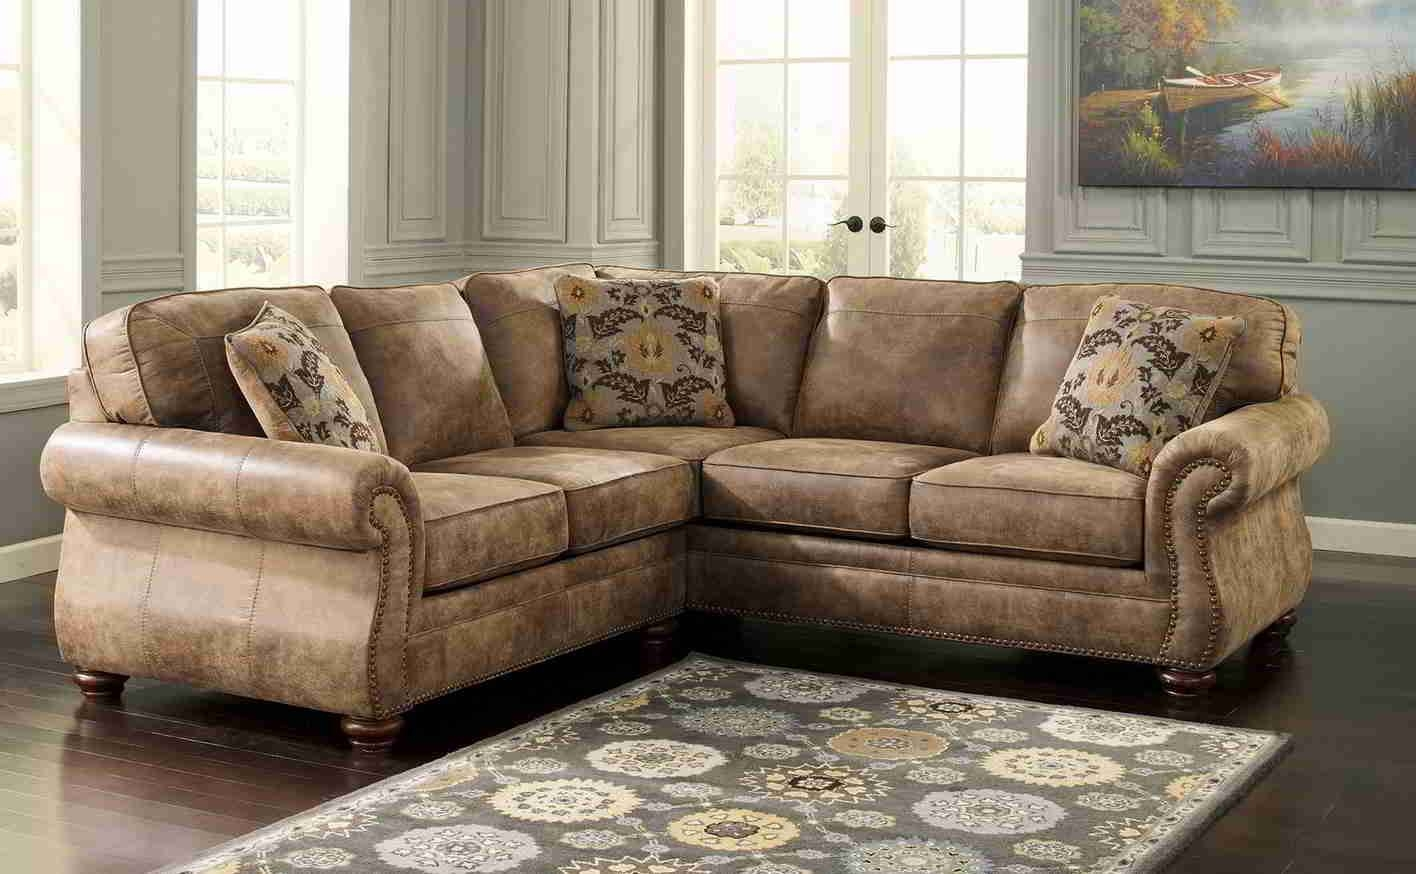 Awesome Sectional Sofas San Diego 24 For Leather Sectional Sofas for Leather Sectional Sofas Toronto (Image 1 of 25)